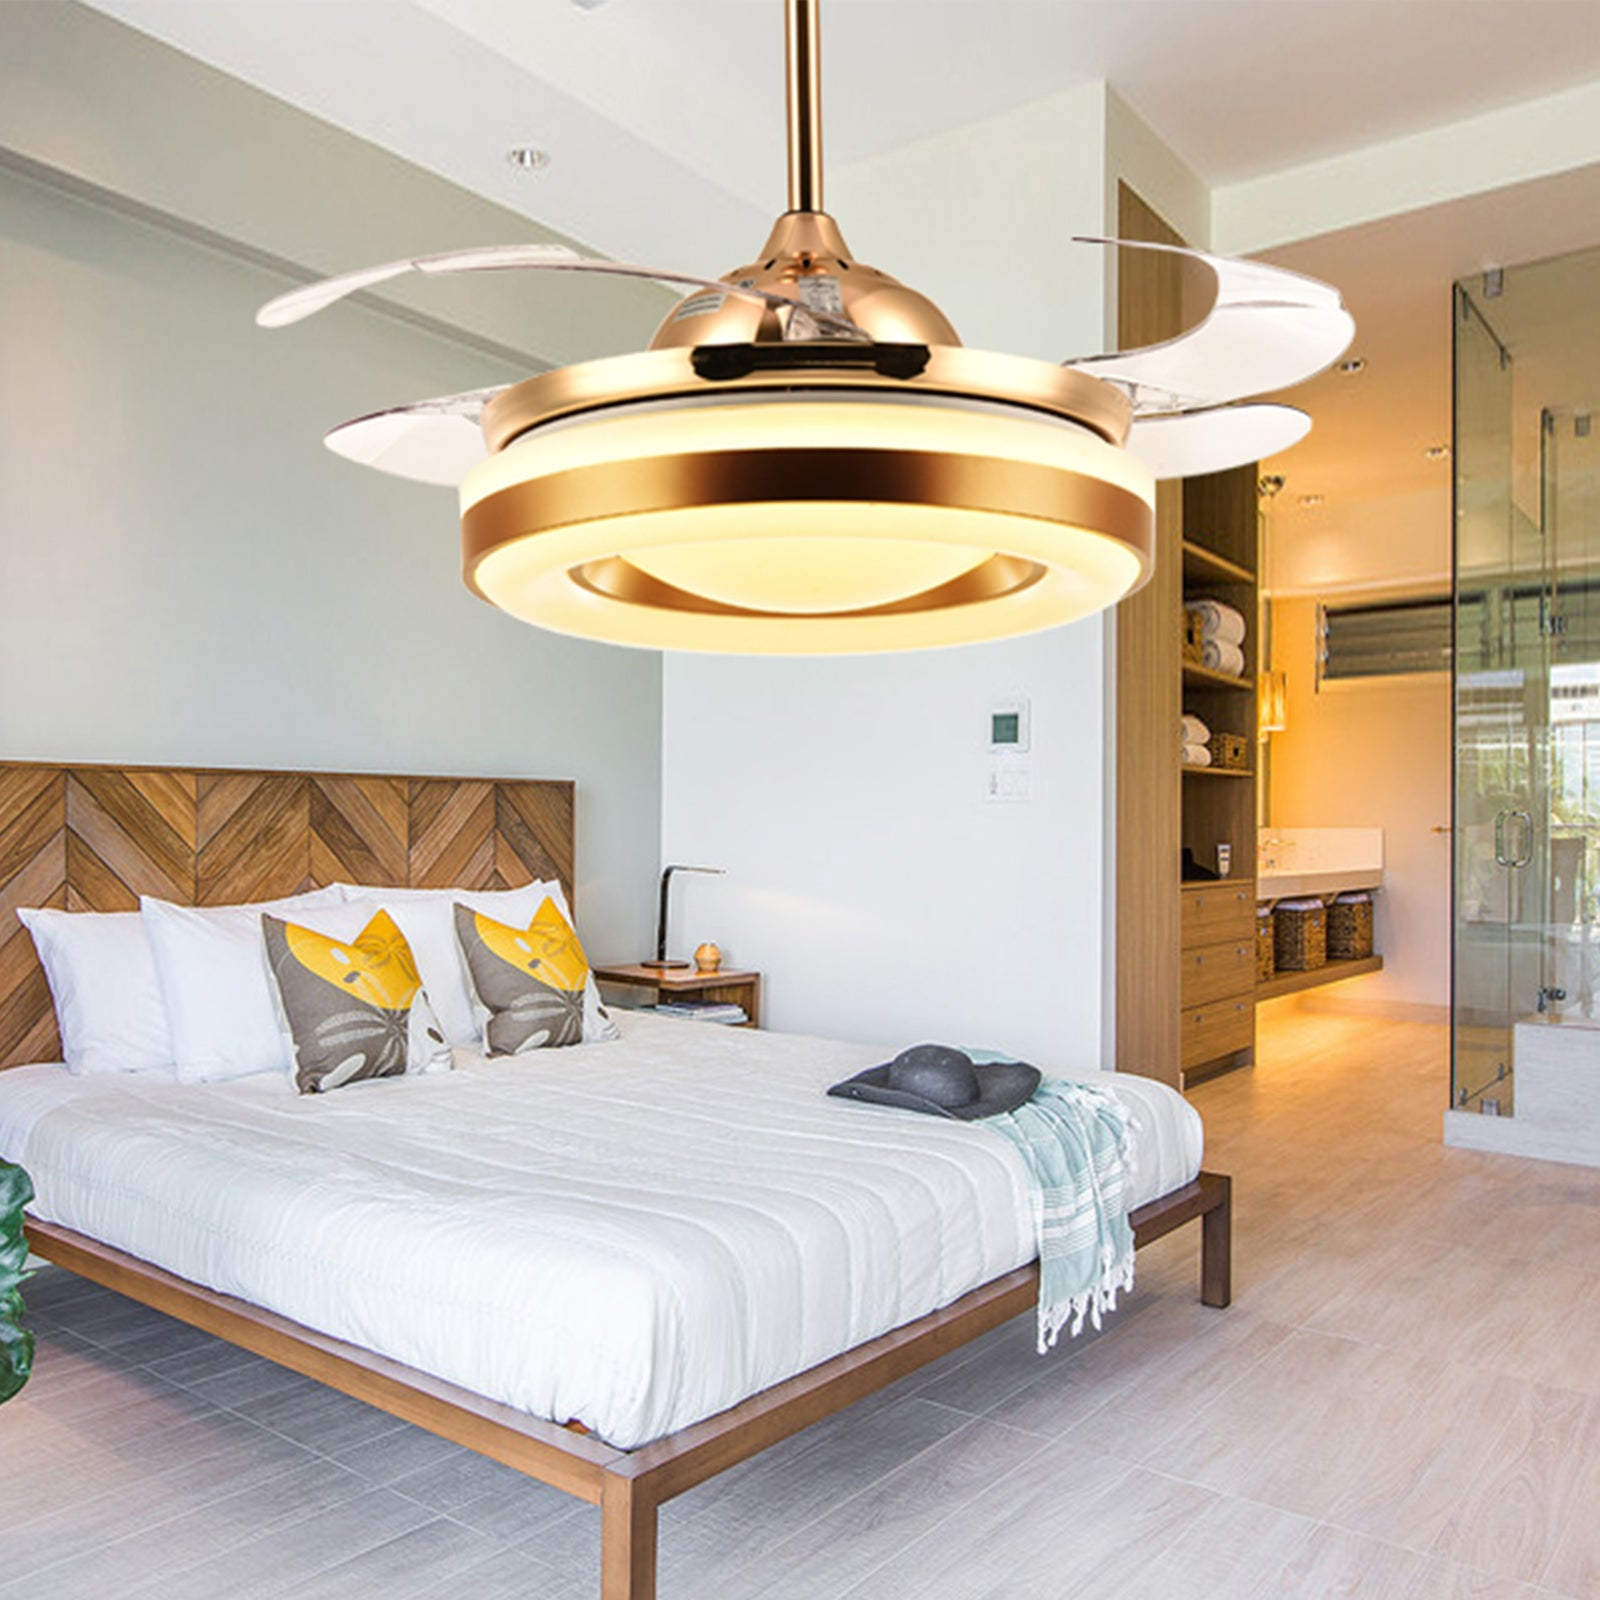 Ceiling Fan With Golden Lighting Design Bedroom